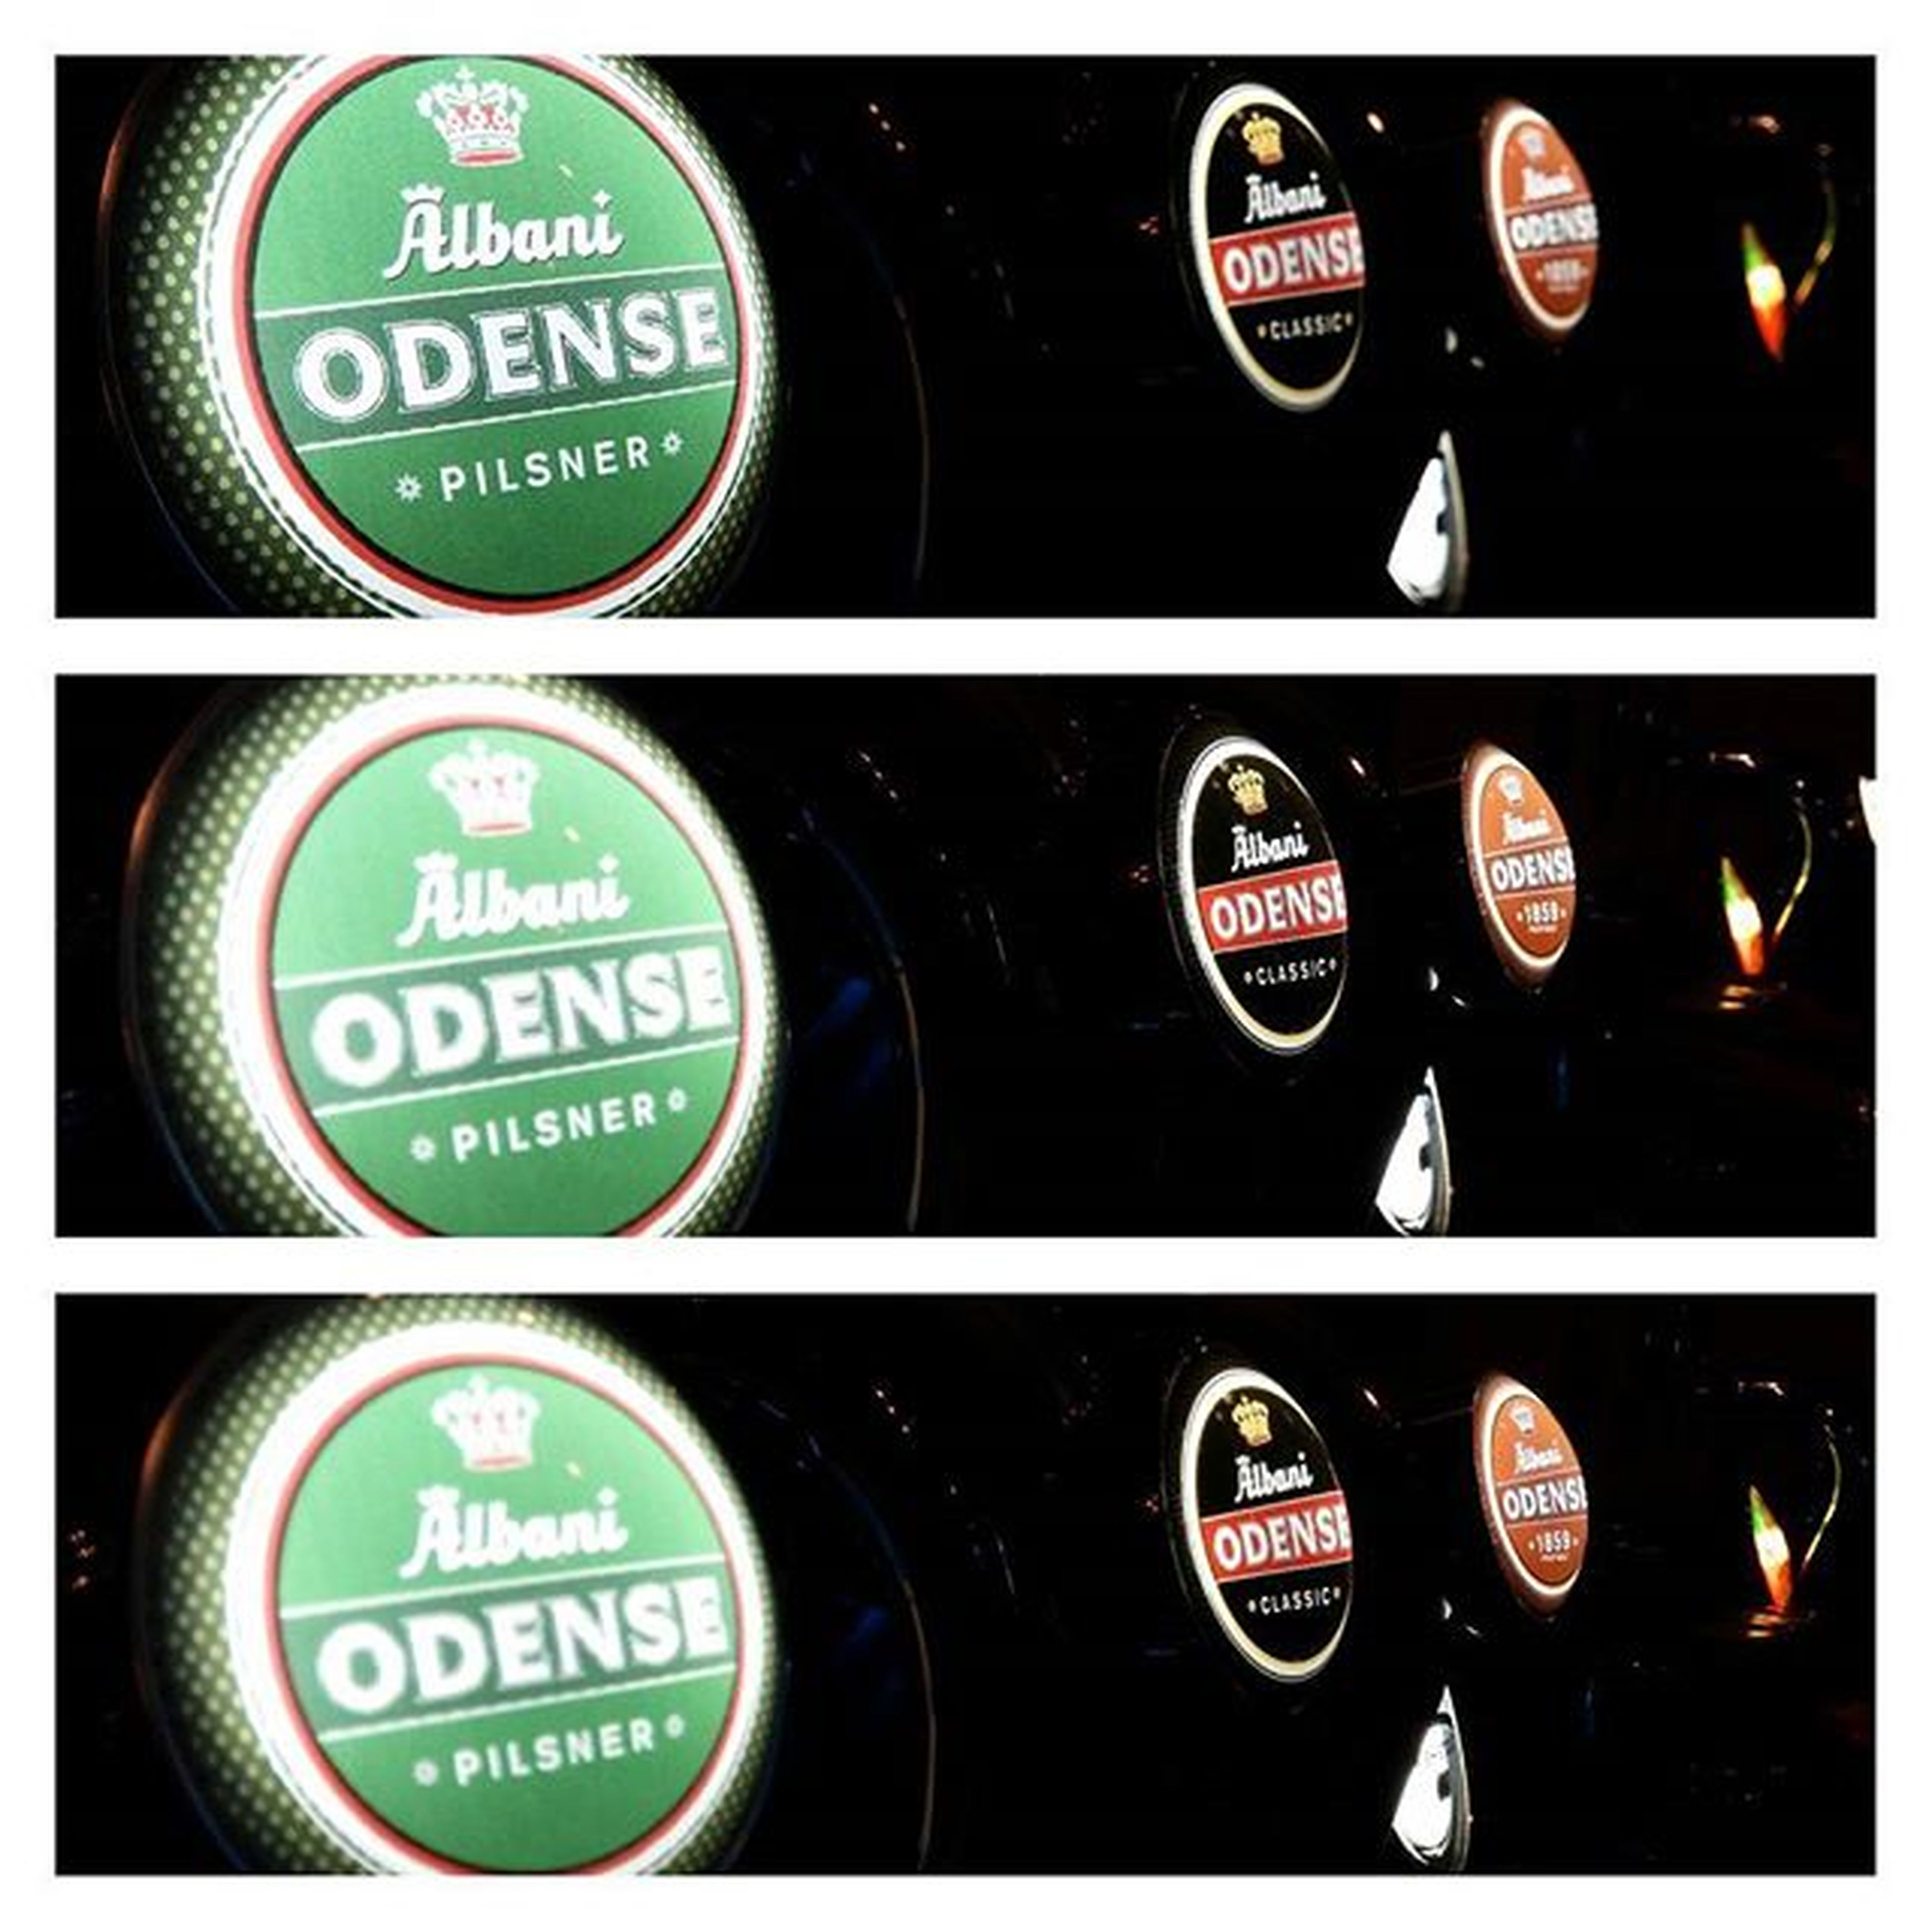 Odense Albani Beers Pilsner Classic Fourmalt Beers Odense Denmark